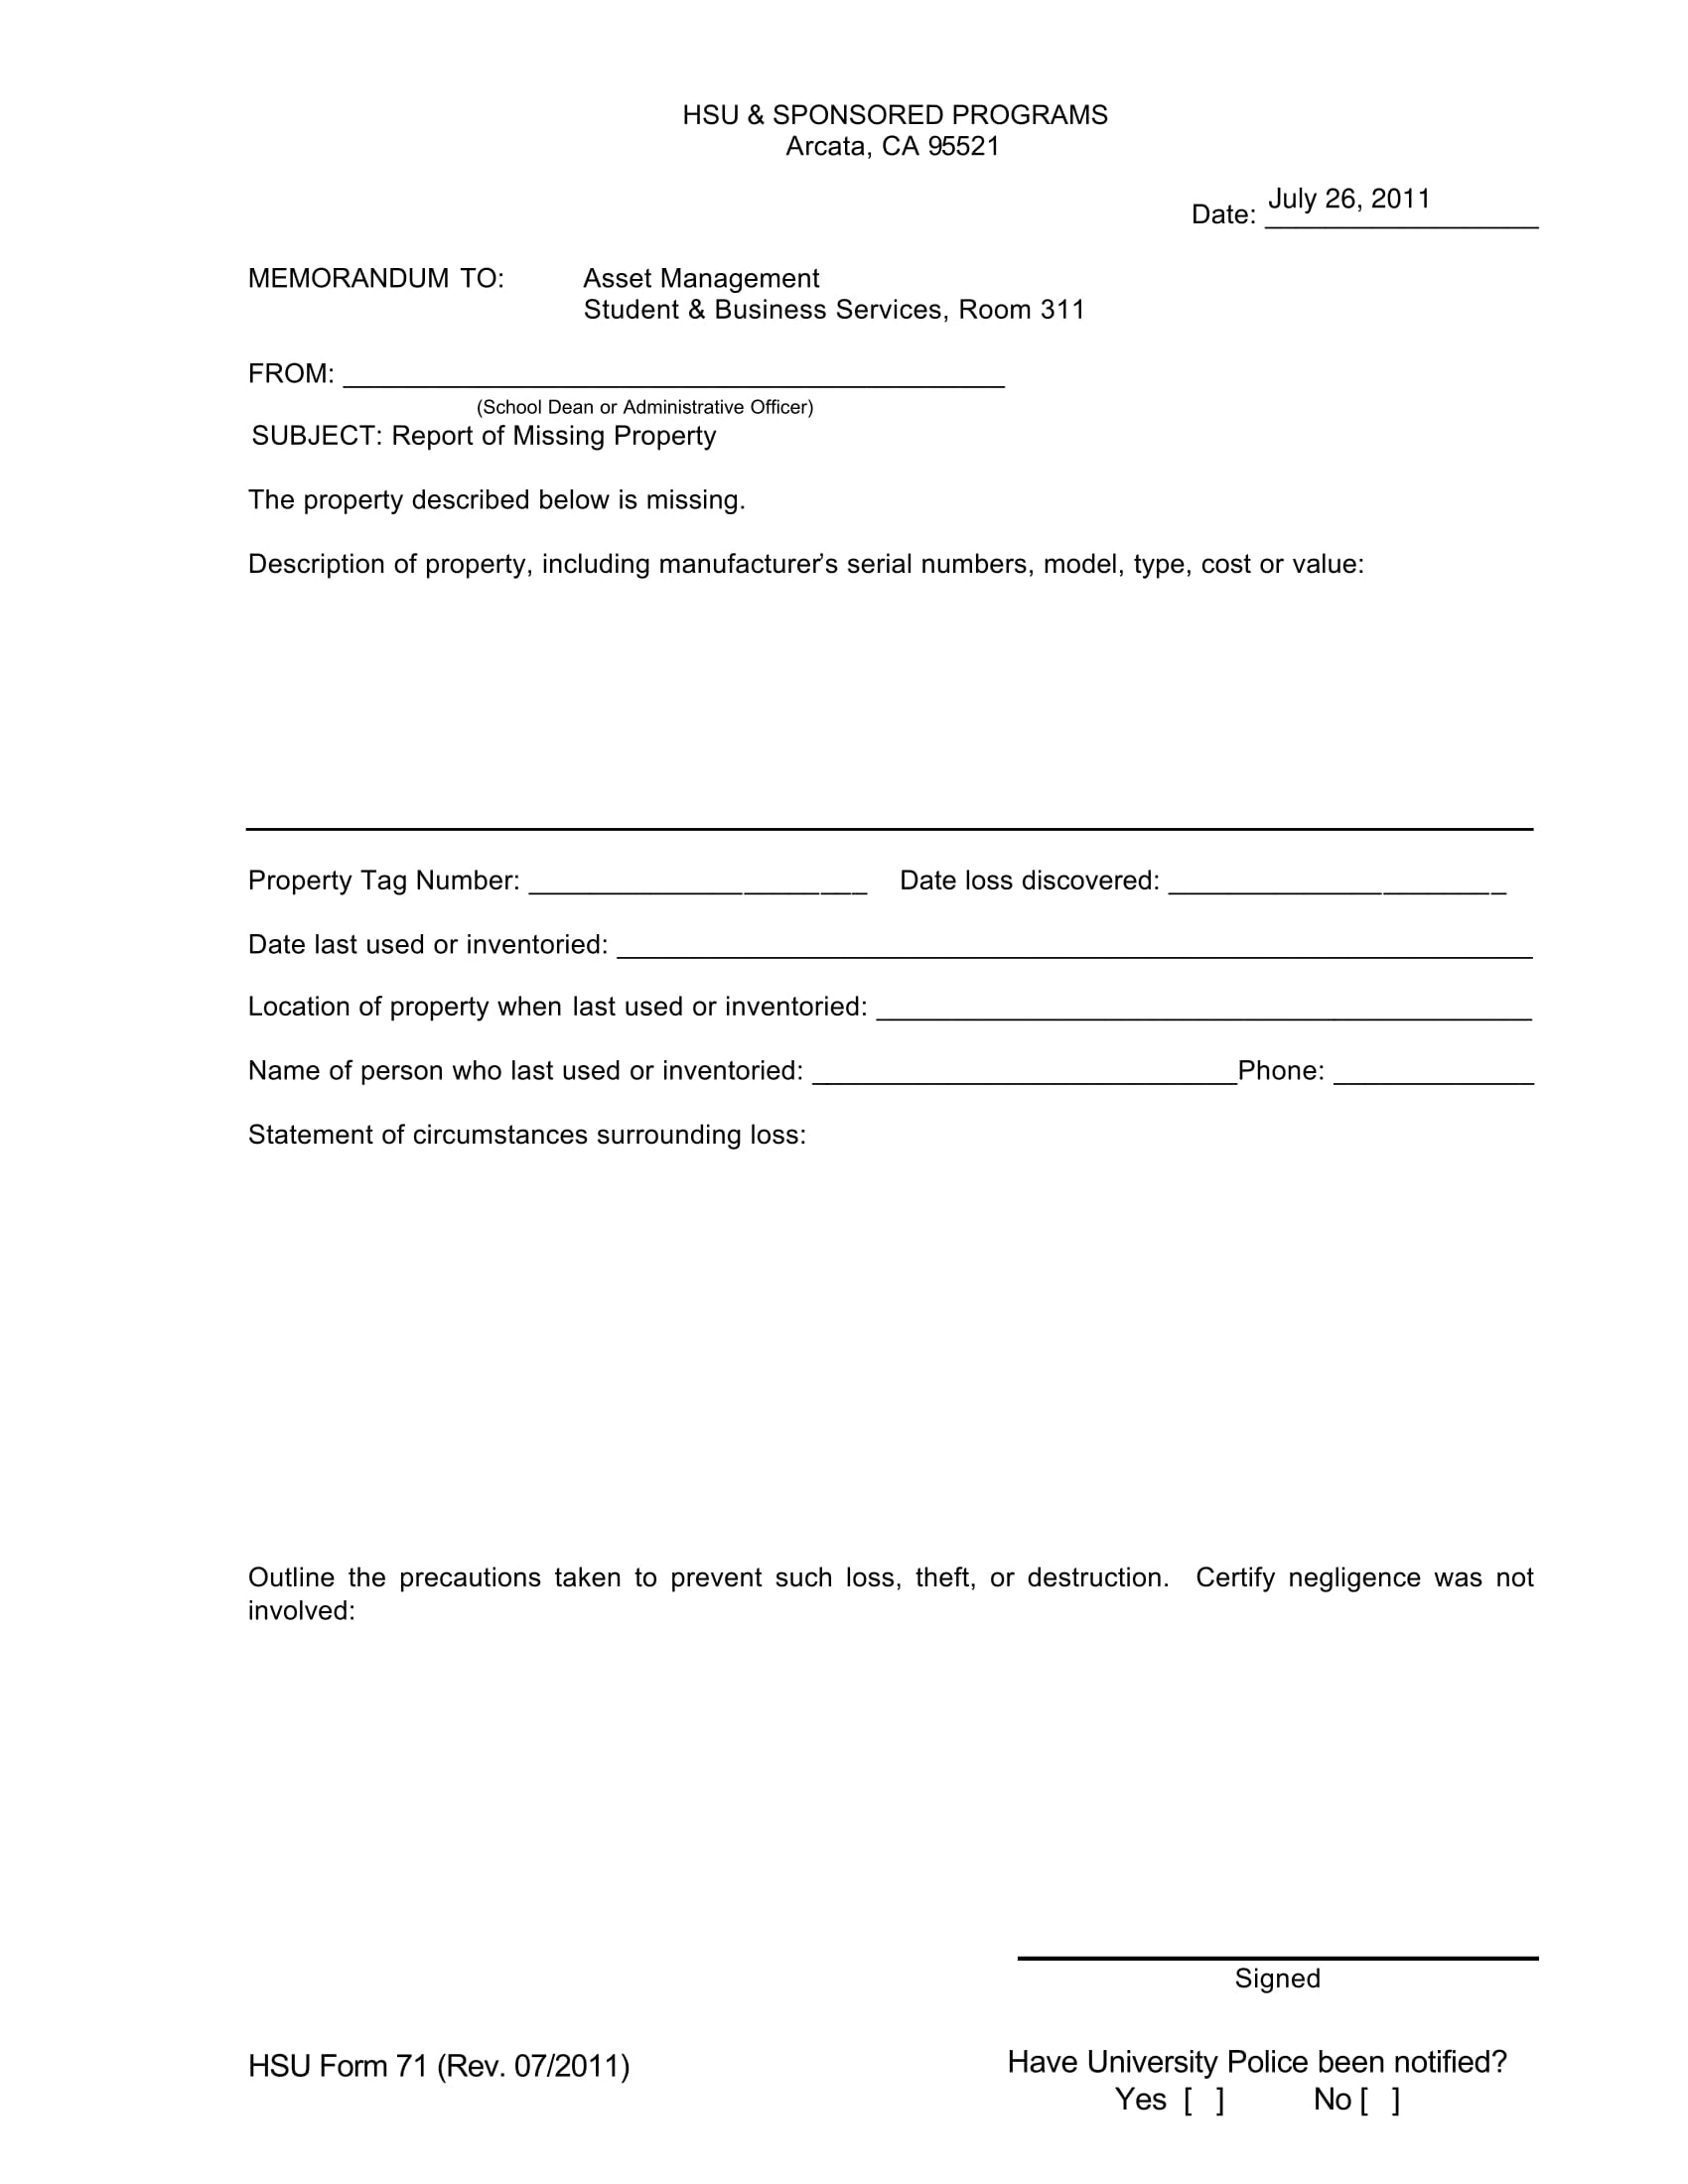 report of missing property form 1